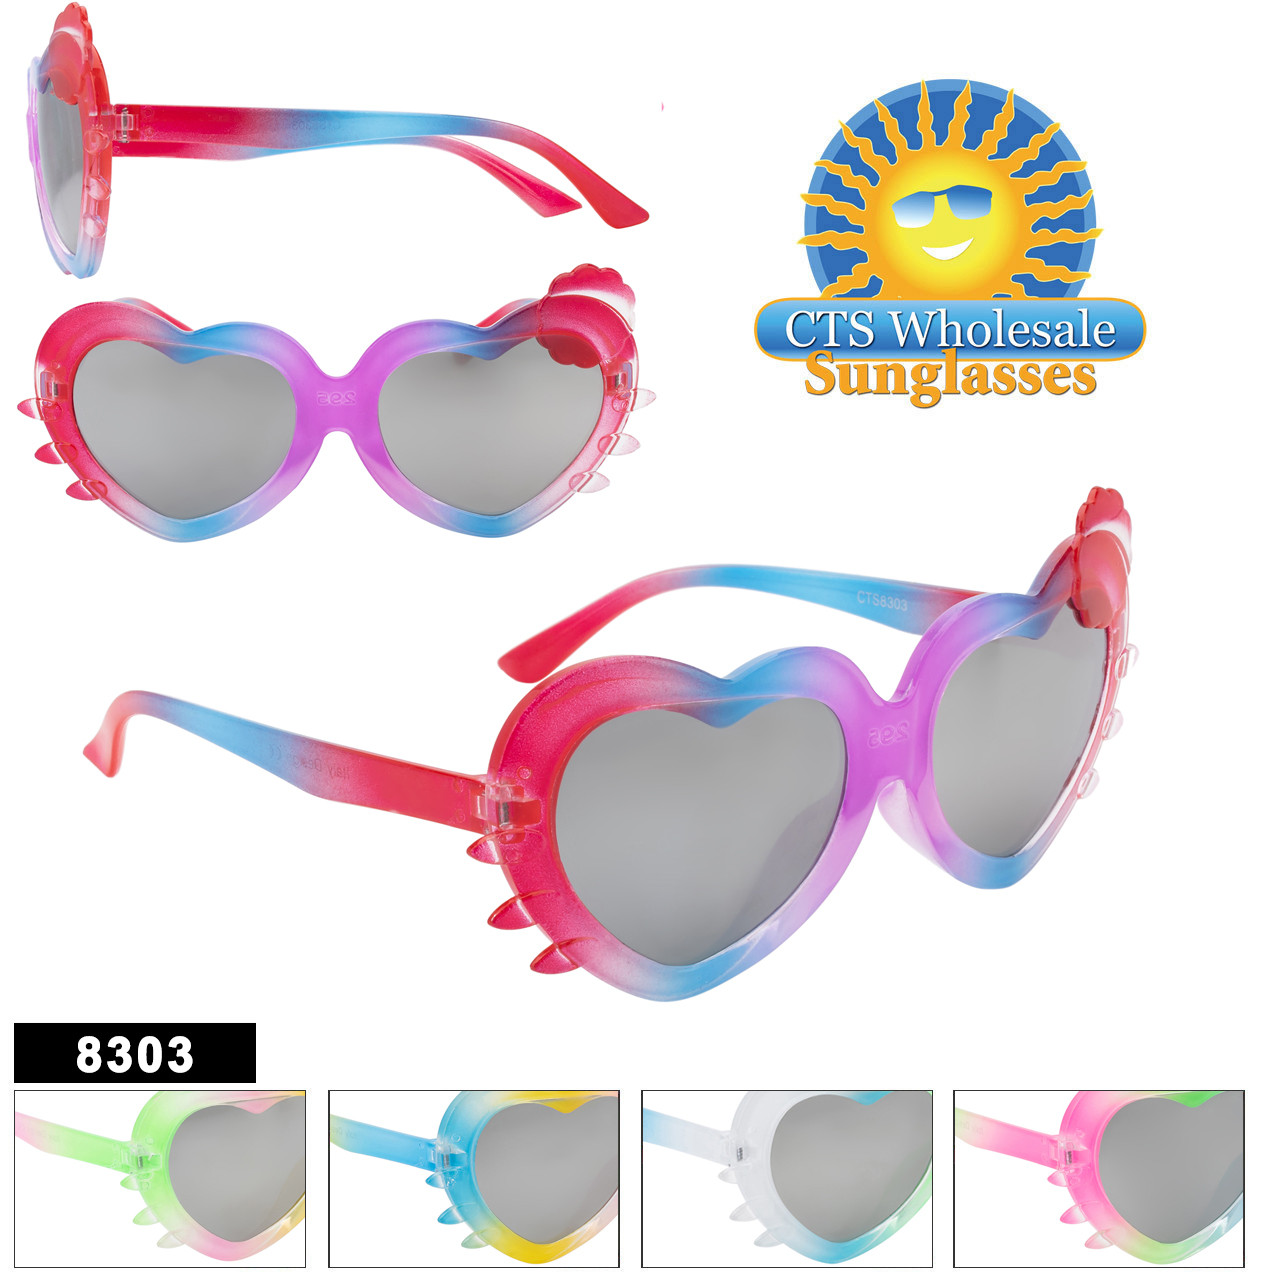 Cute Heart shaped frames in 5 great color combinations with kitty whisker accents on each side.